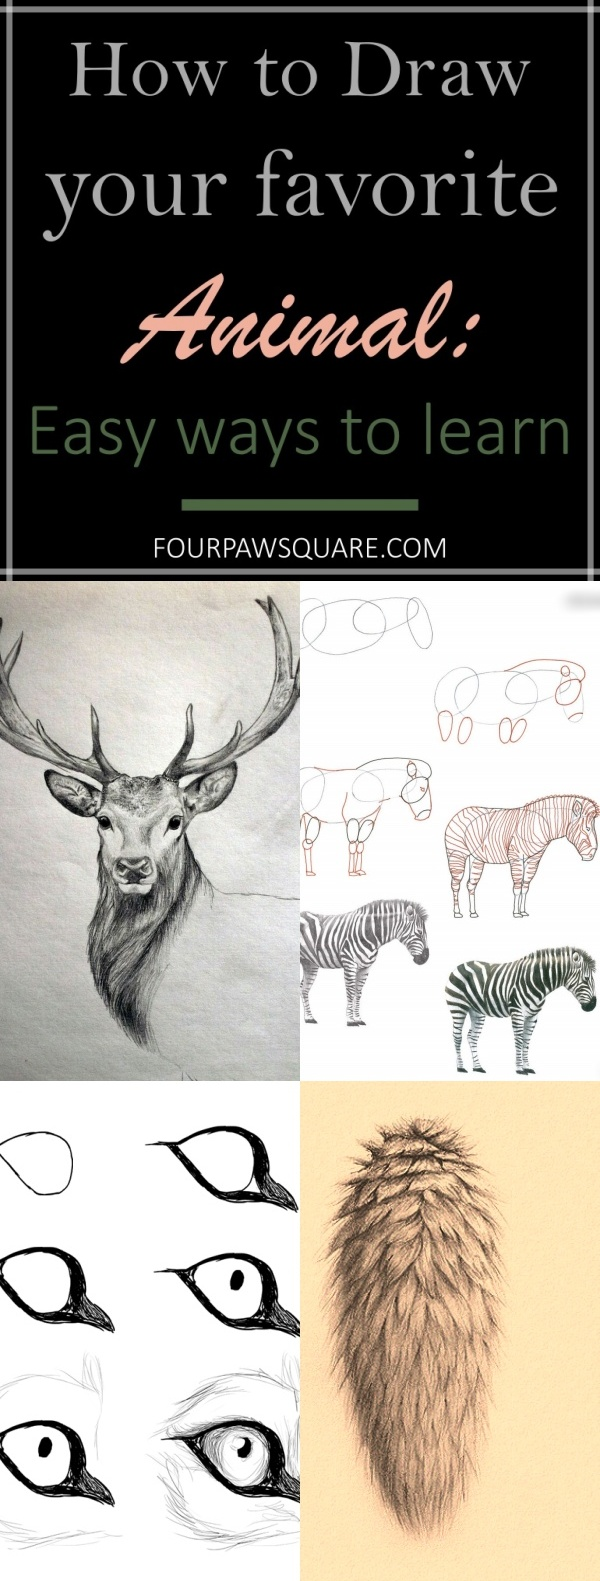 How to Draw your favorite Animal: Easy ways to learn